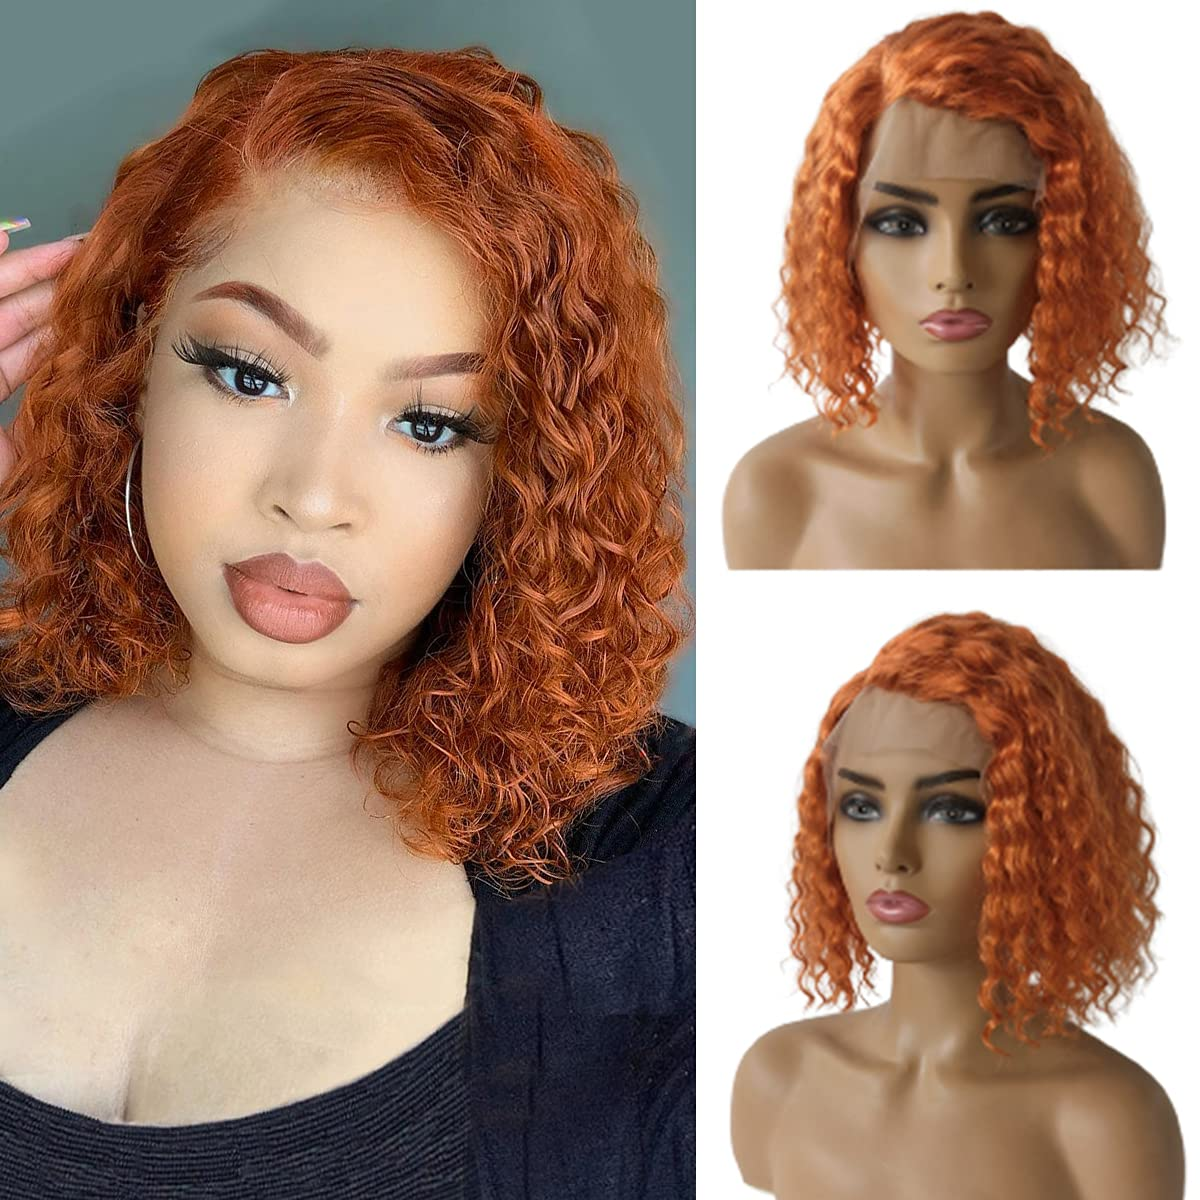 Orange Curly Human Hair Wig 13x1 Side W Wigs Part Lace Bob Max 58% OFF Direct sale of manufacturer Front